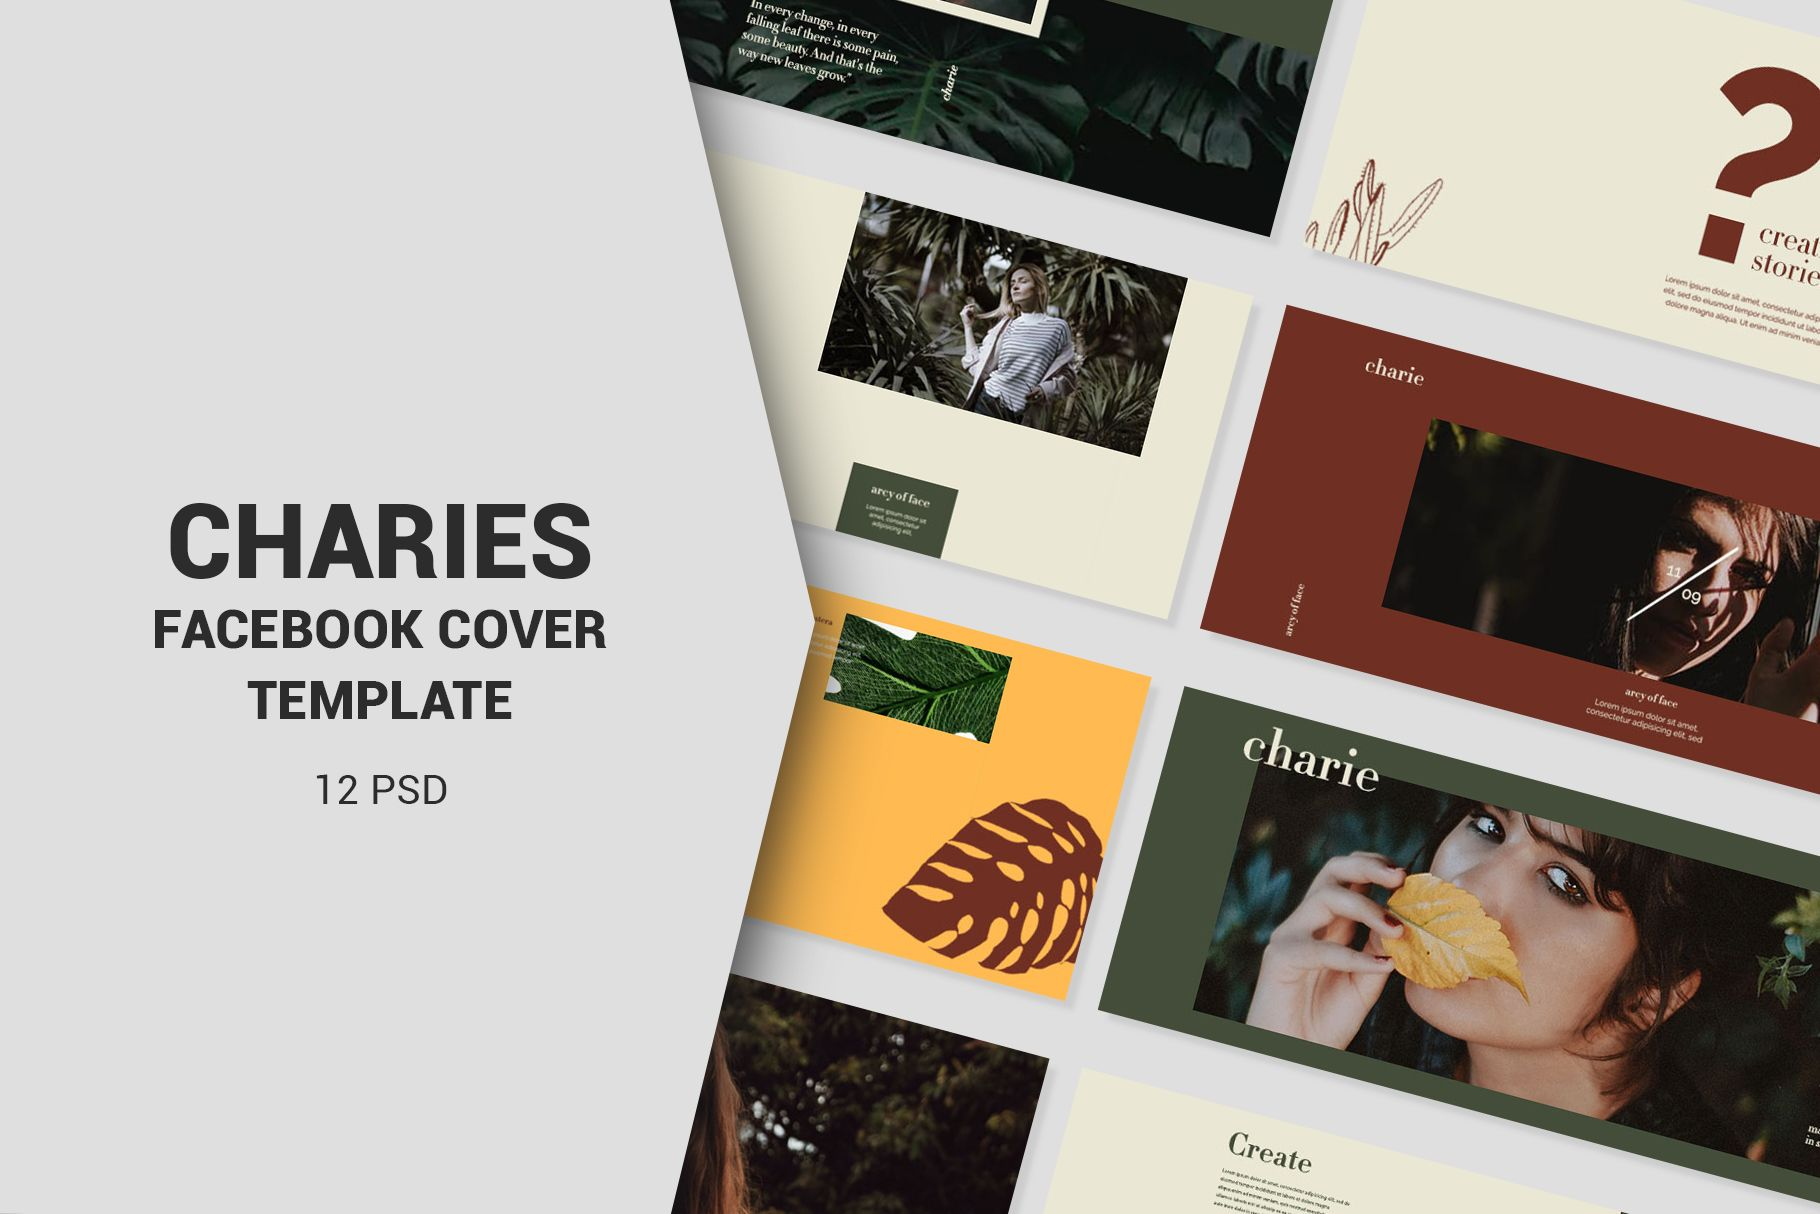 Charies Facebook Cover Templates 431069 Web Elements Design Bundles Facebook Cover Template Cover Template Facebook Cover Images